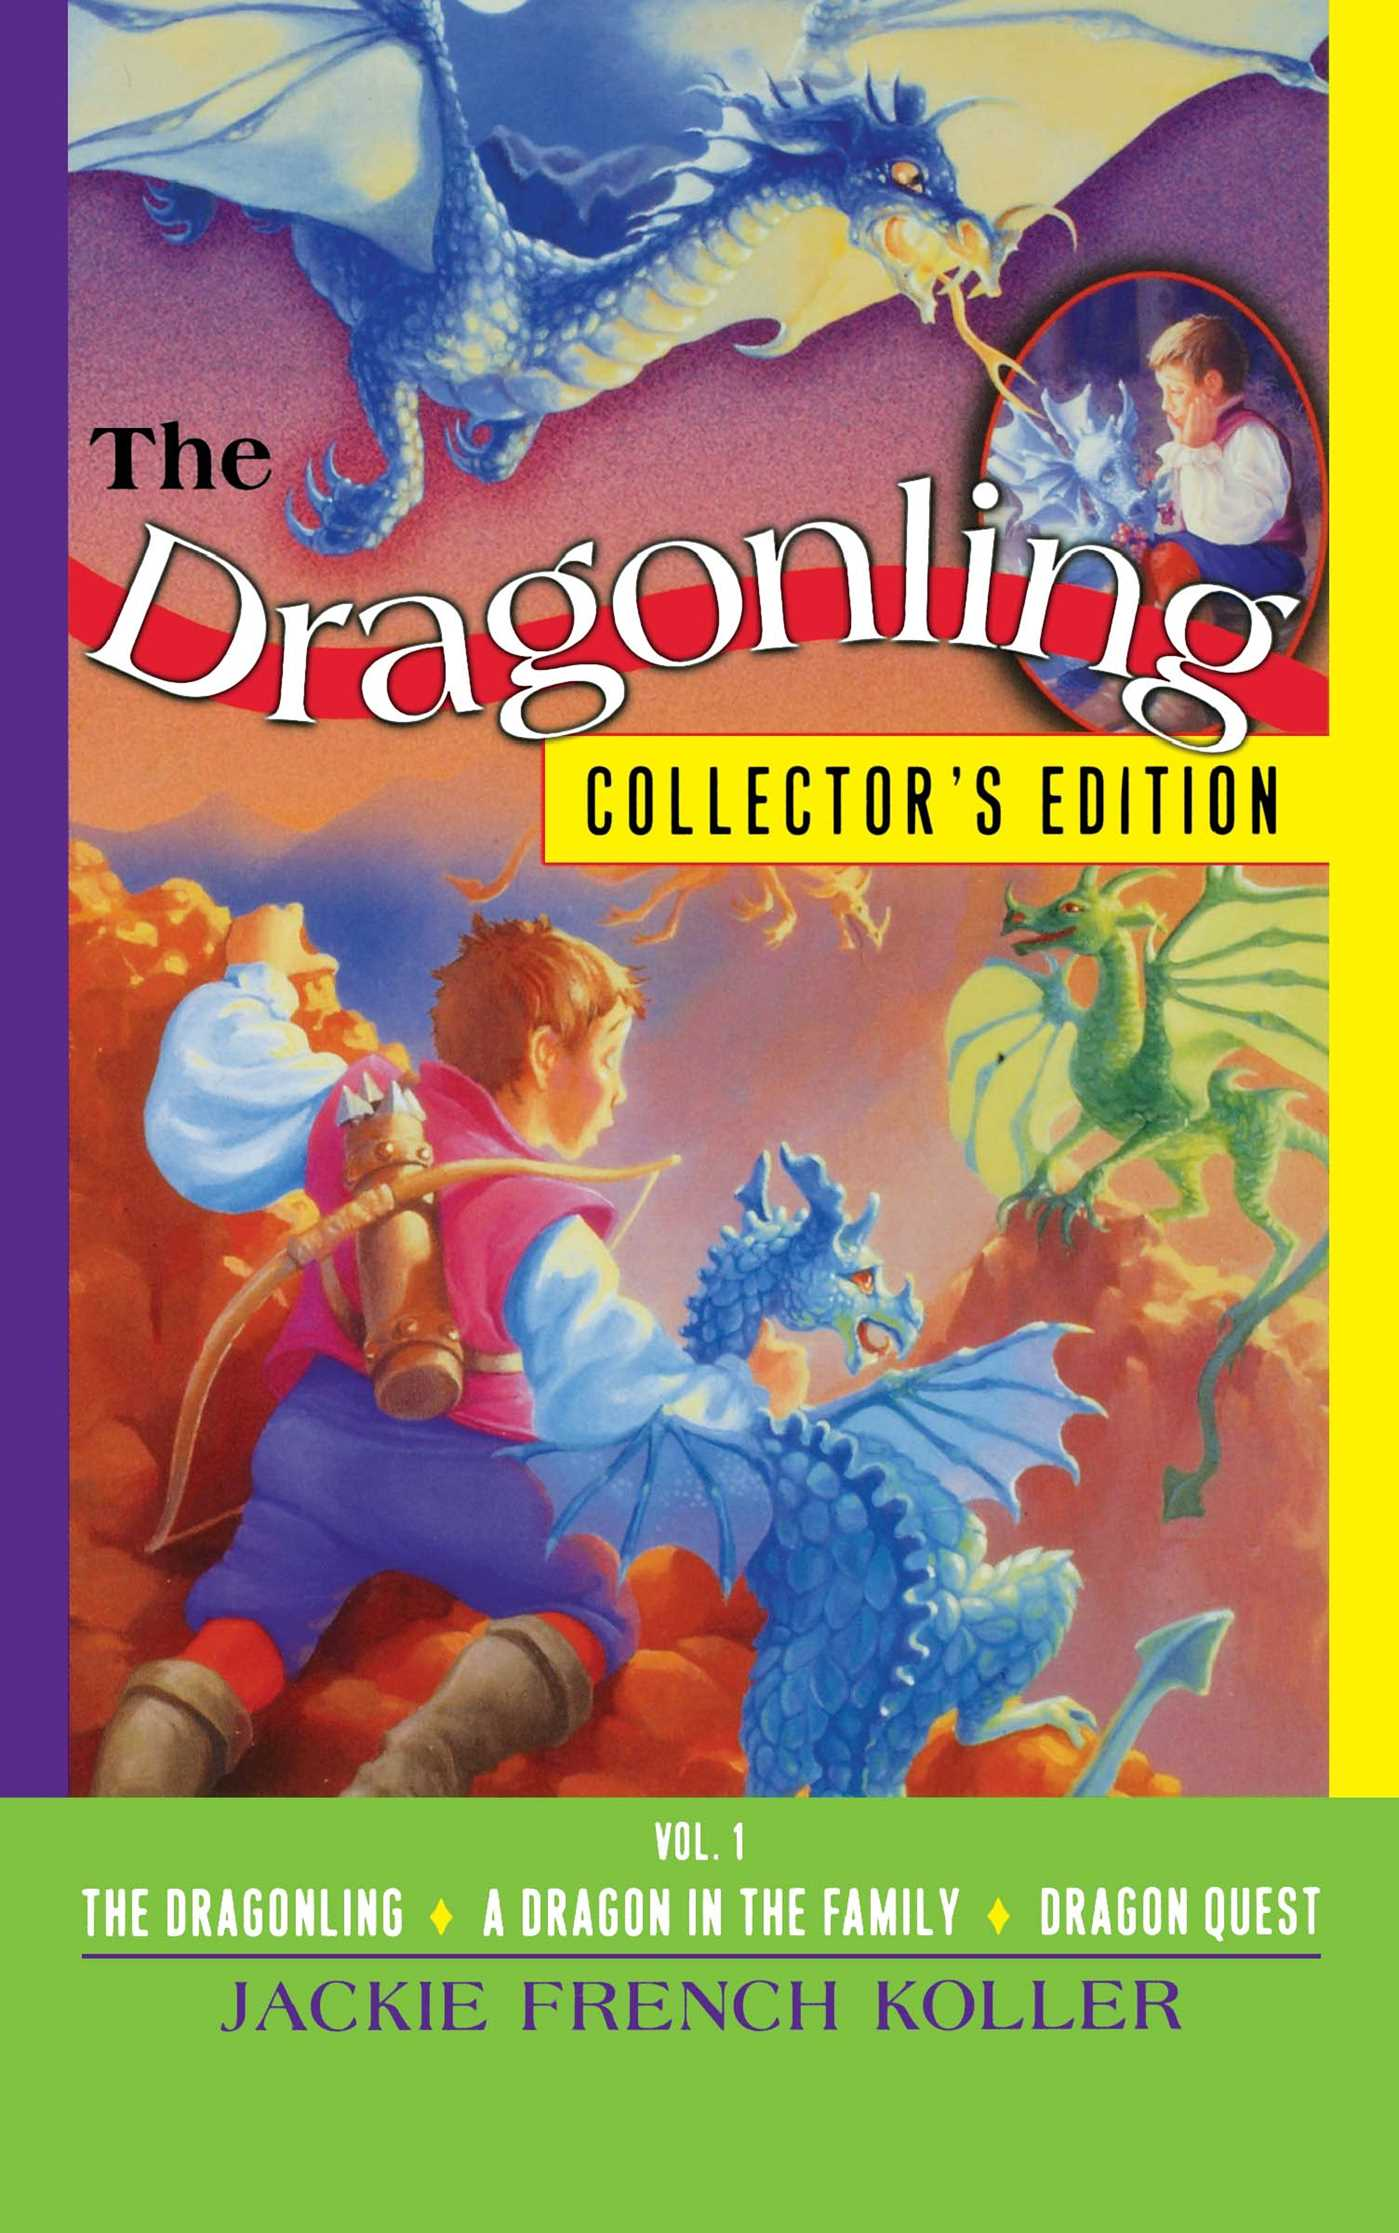 The-dragonling-collectors-edition-vol-1-9780743410199_hr